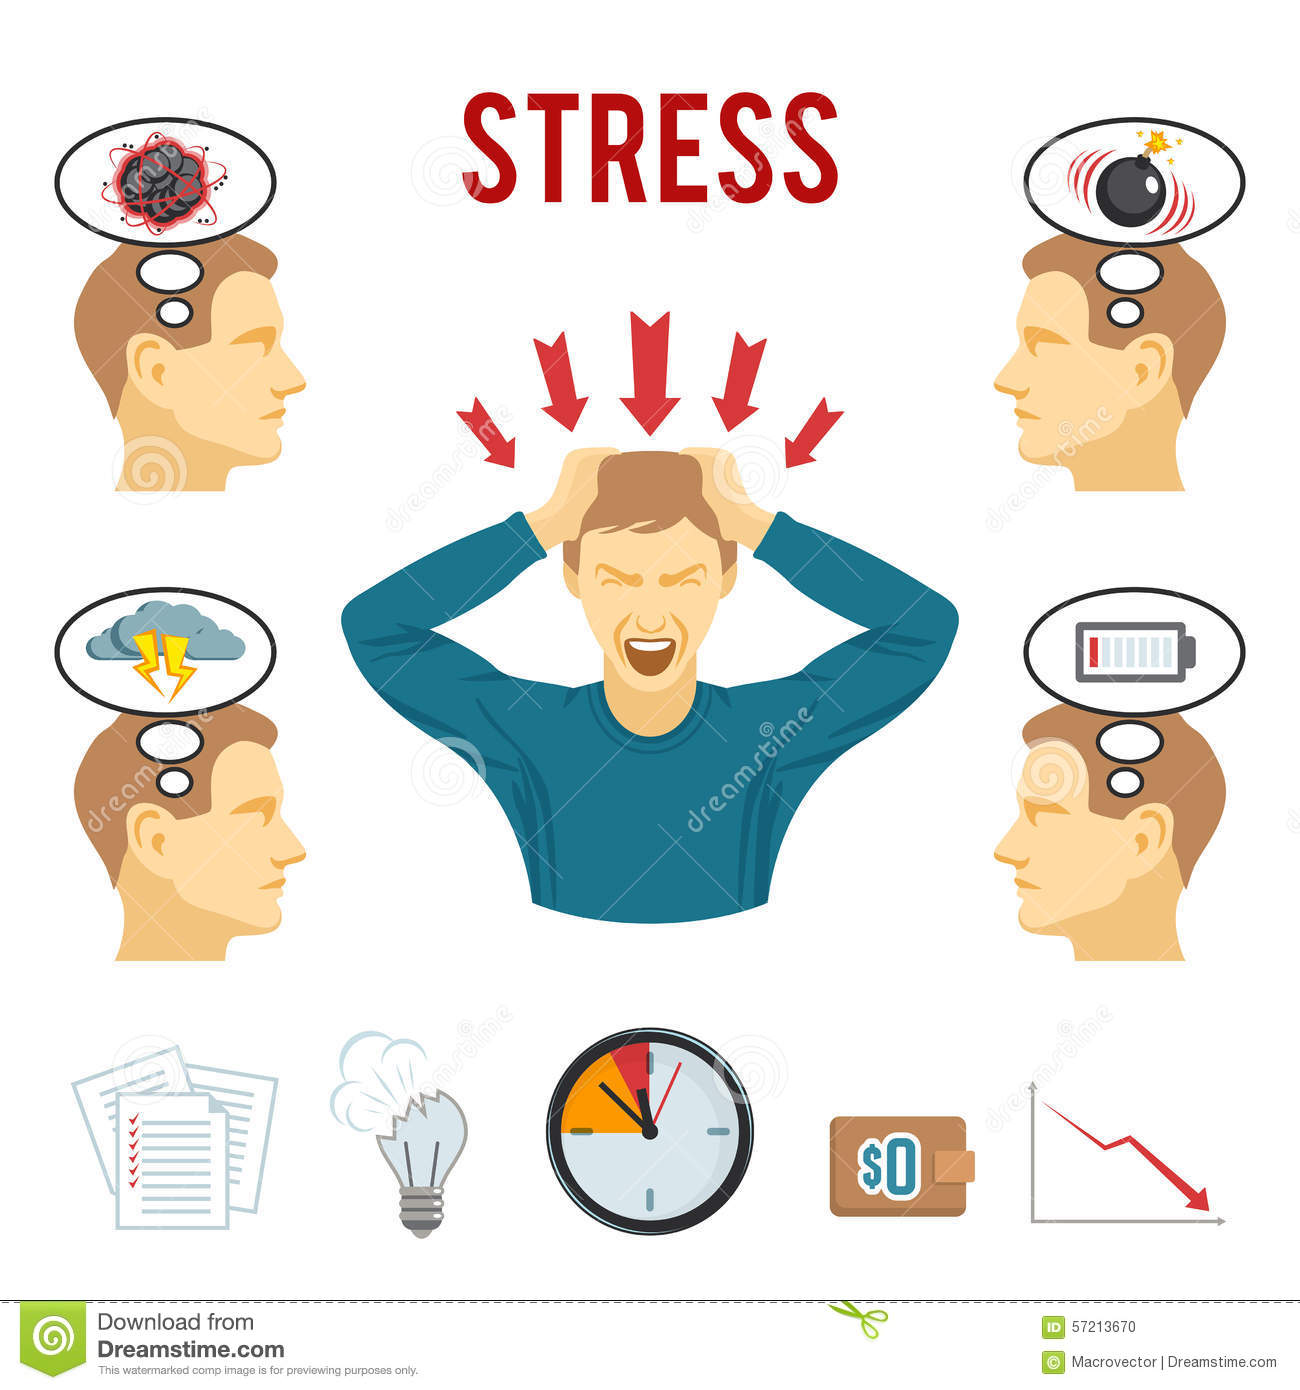 mental-disorder-stress-icons-set-health-disorders-work-related-anxiety-depression-symptoms-abstract-isolated-vector-57213670.jpg